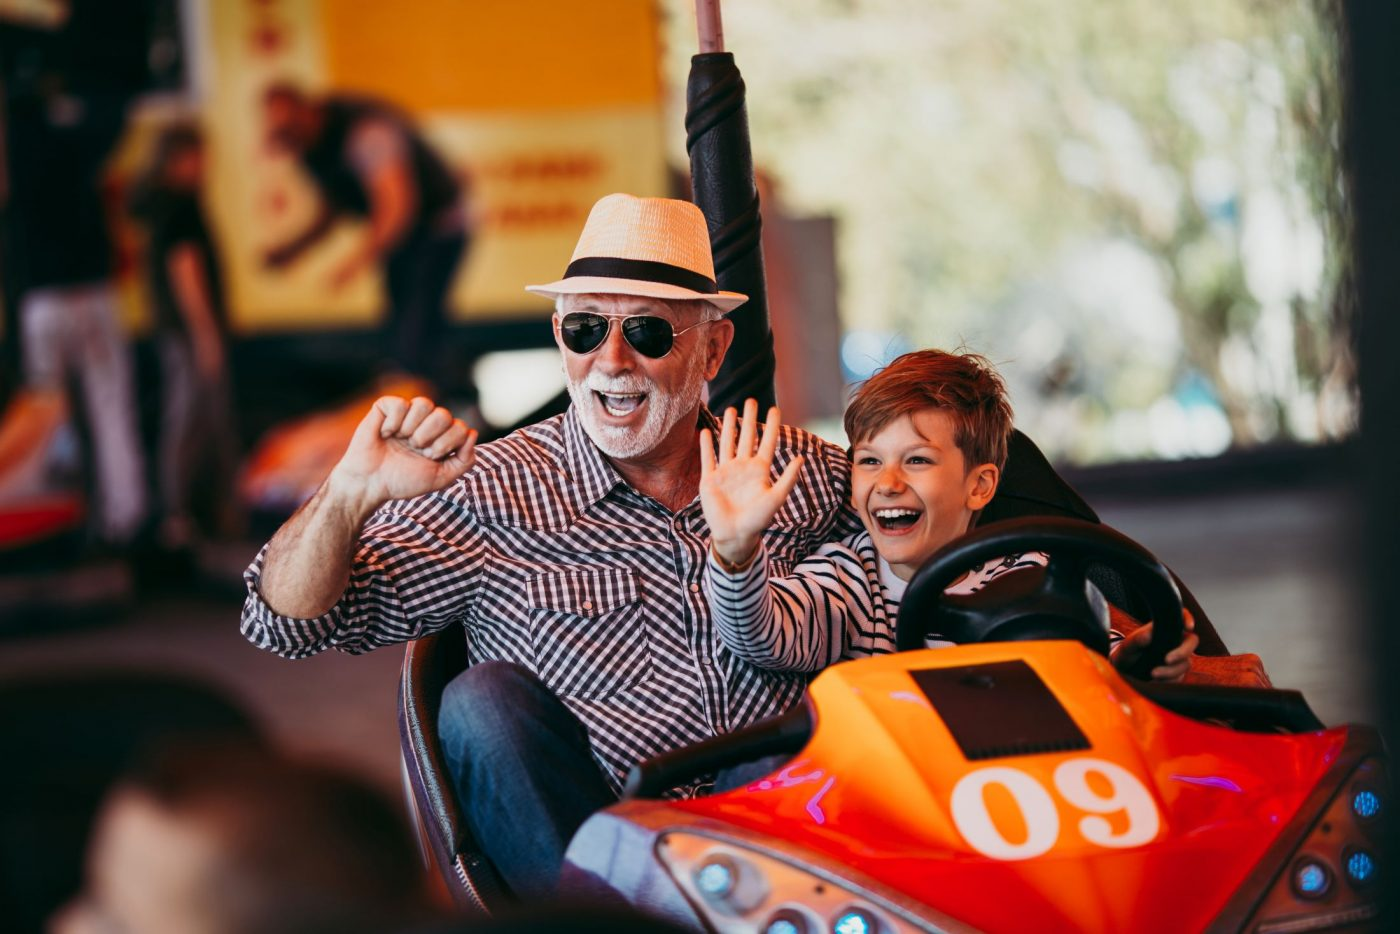 grampa and grandson playing in a bumper car happy and waving at family. Safe while having fun.